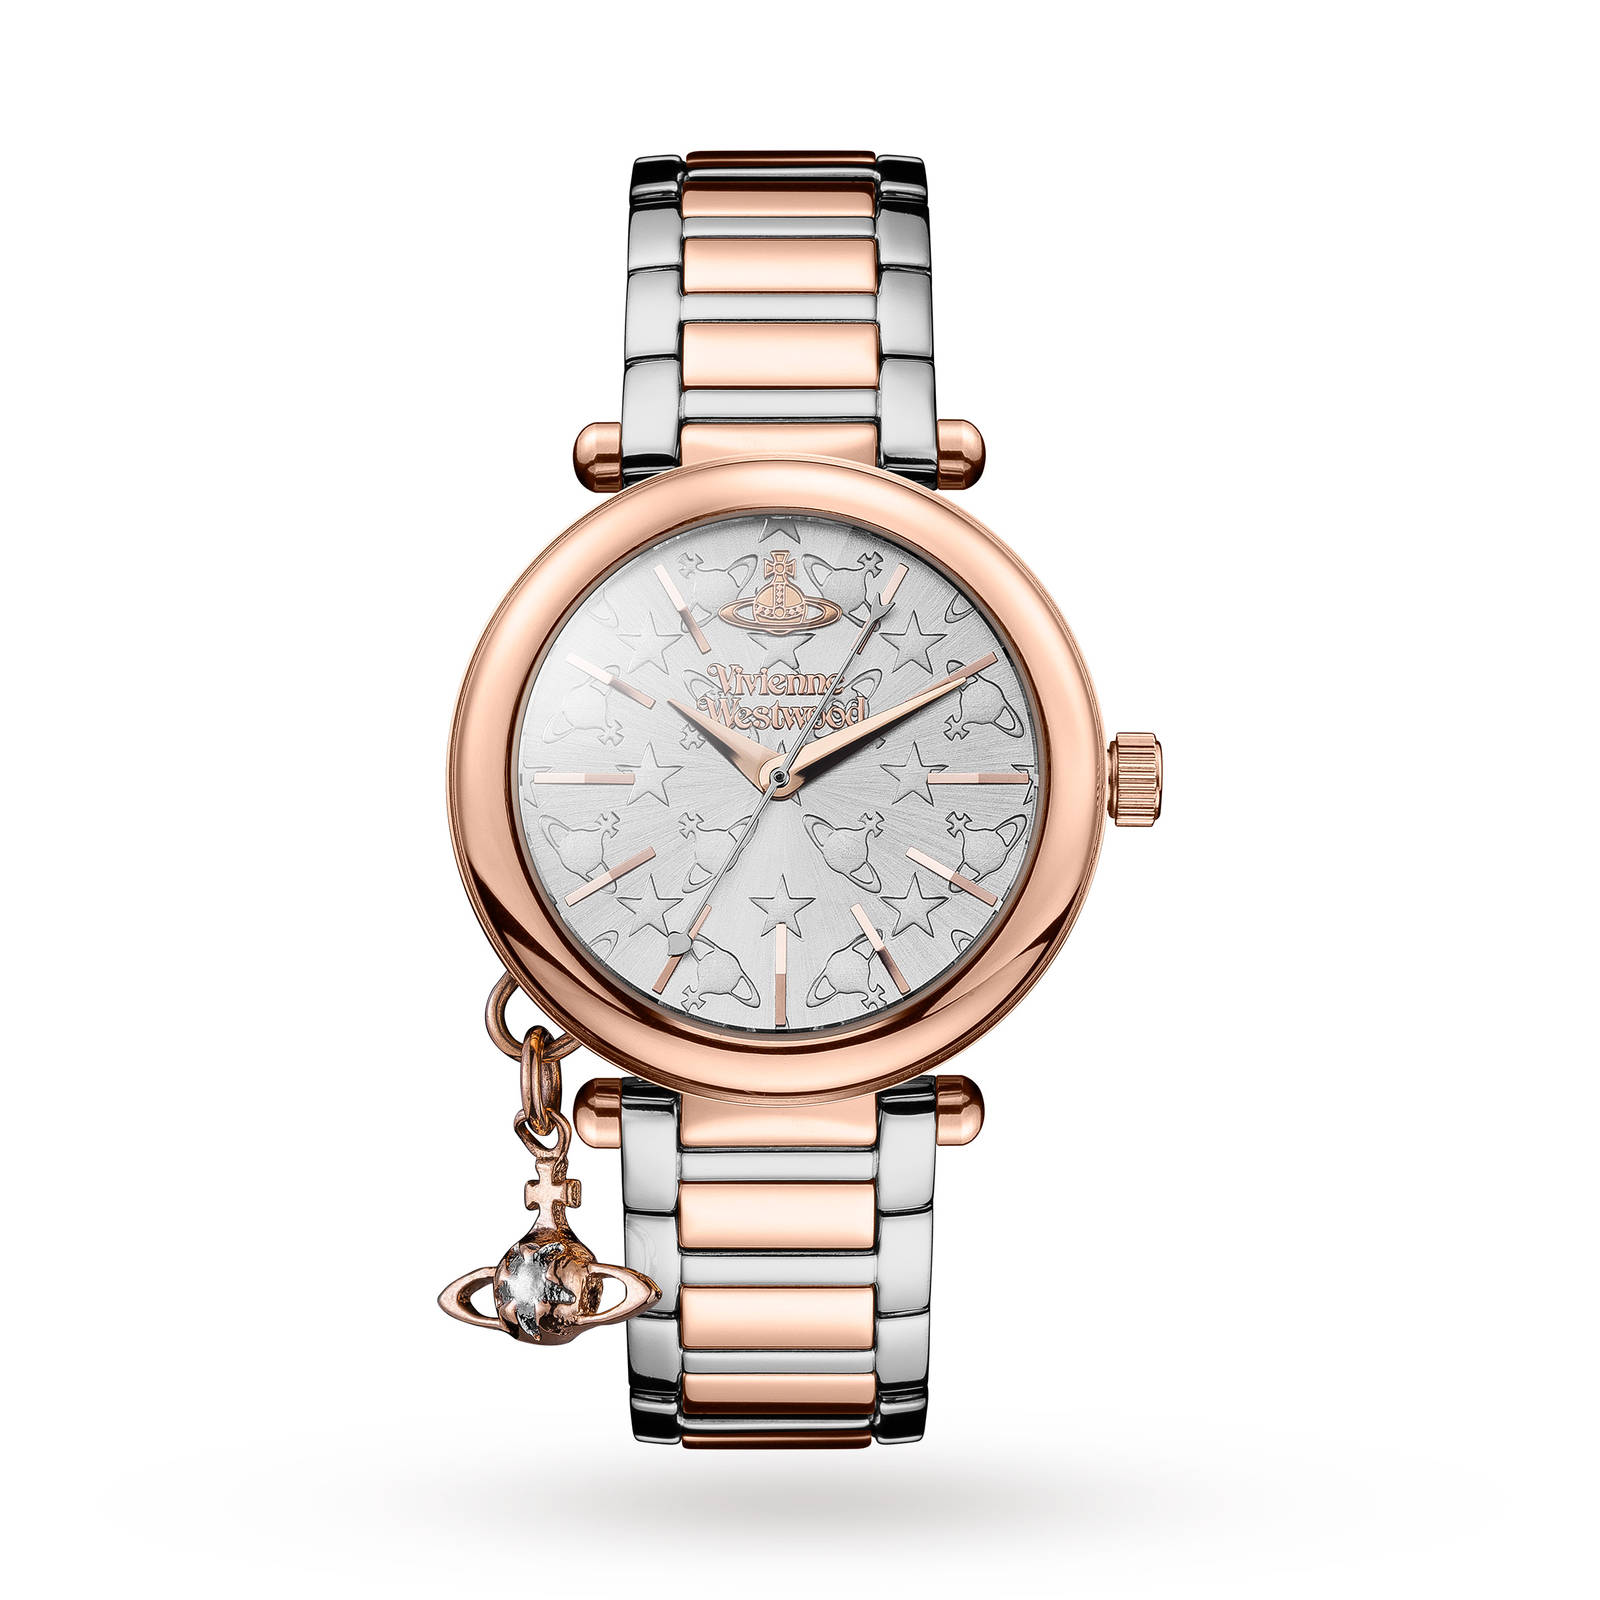 Vivienne Westwood Ladies Orb Watch VV006RSSL - Exclusive